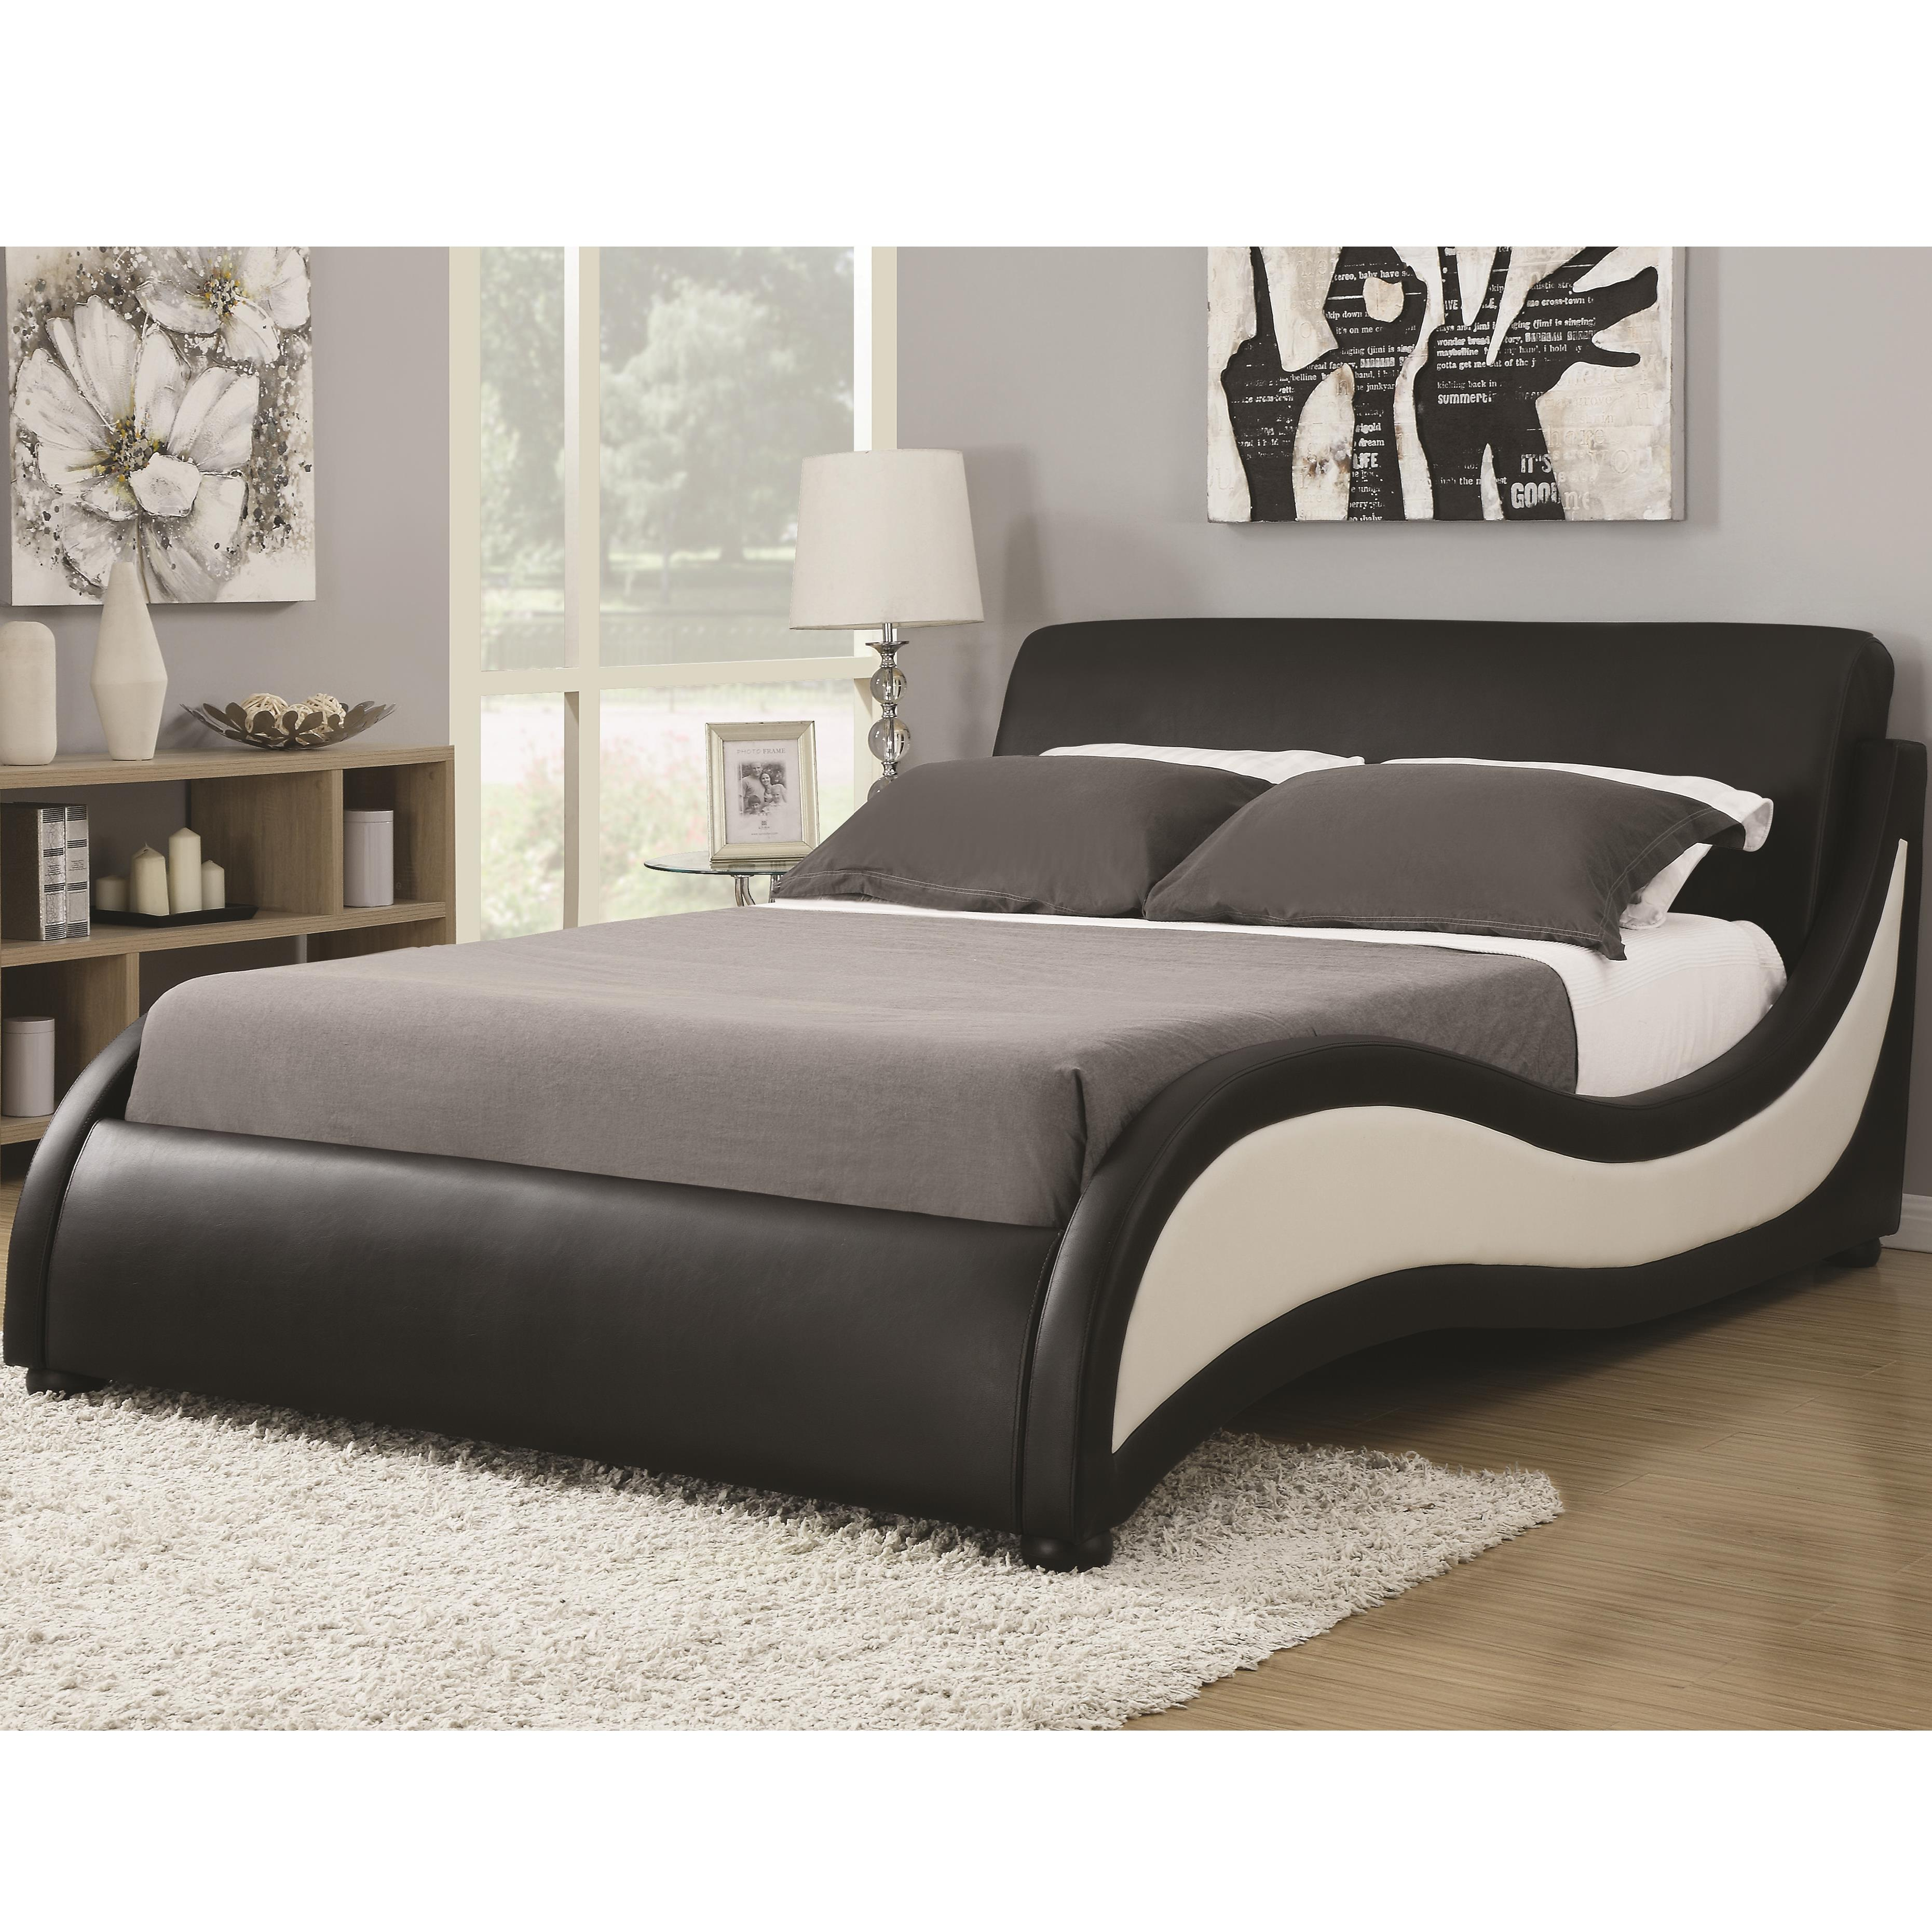 King Niguel Modern Contemporary Platform Upholstered Bed